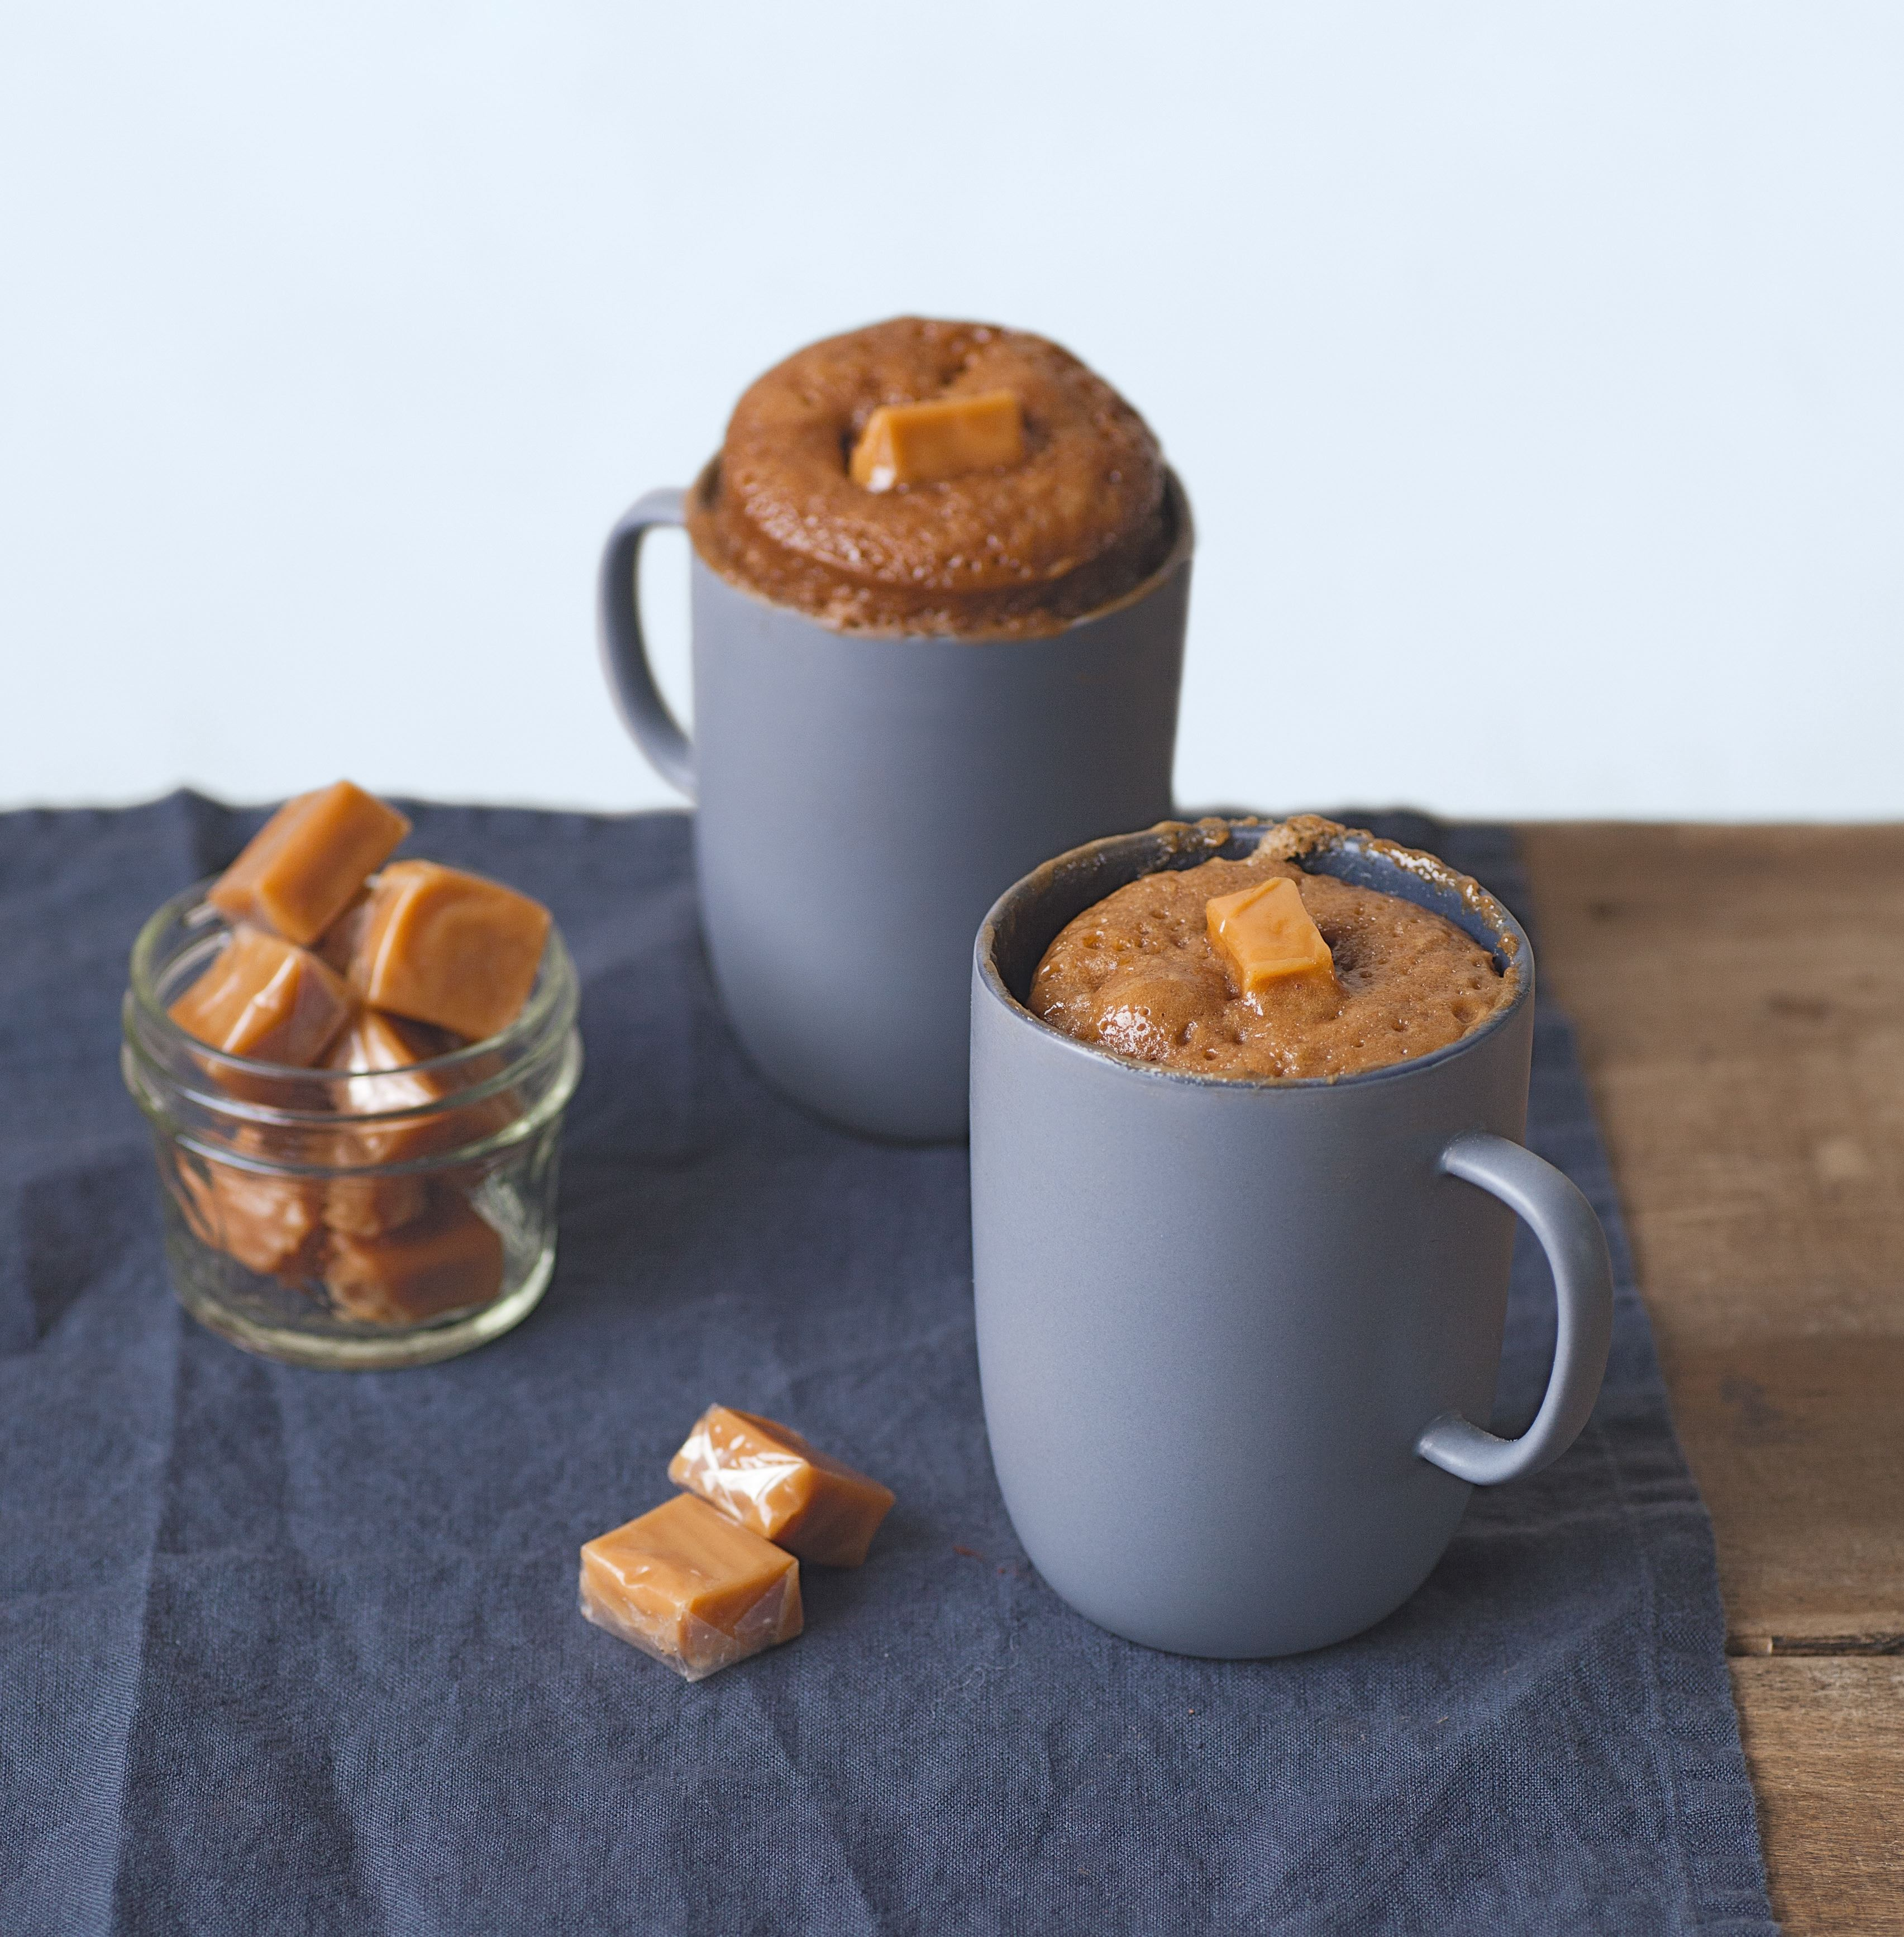 Choc-coffee mug cake with a soft caramel middle